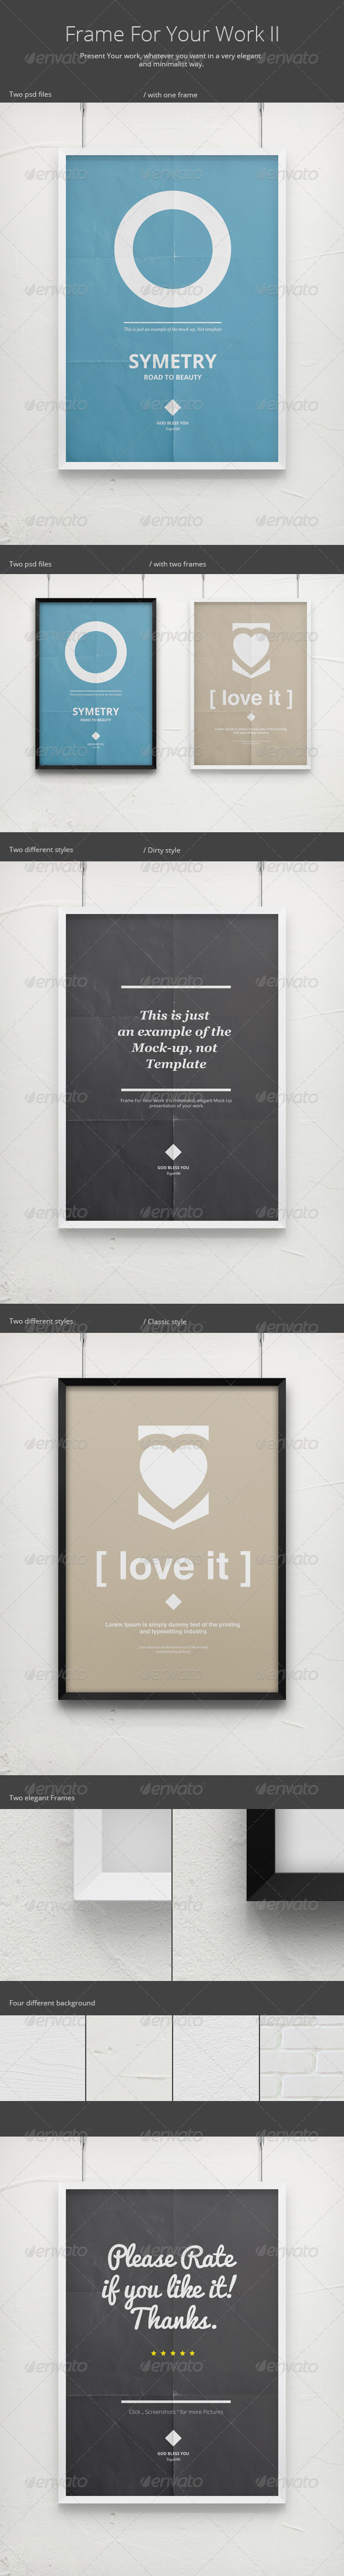 GraphicRiver Frame For Your Work II Poster Mock-Up 2800509